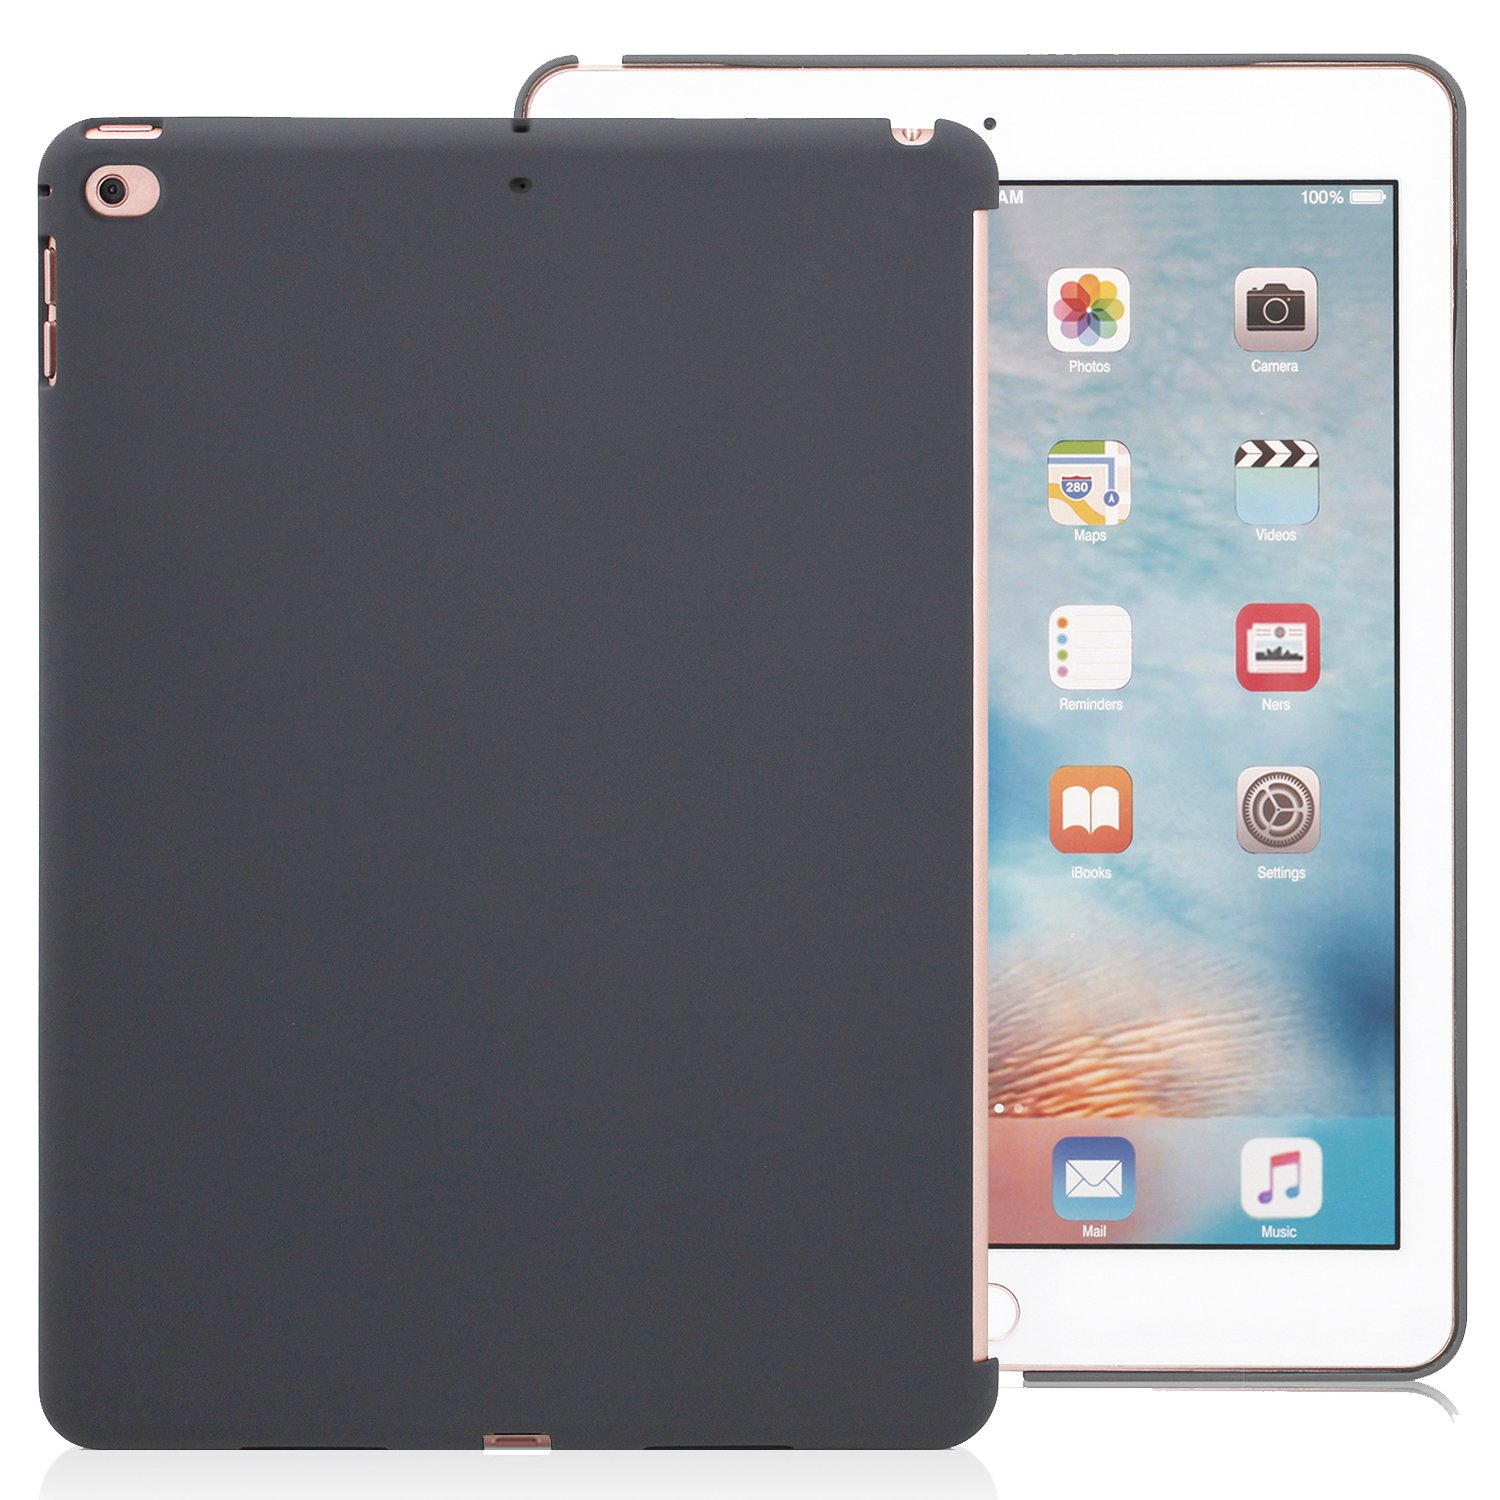 KHOMO Compatible with Apple iPad 9.7 Inch 2017 and 2018 Inch Charcoal Gray Color Case - Companion Cover - Perfect match for Apple Smart keyboard and Cover.